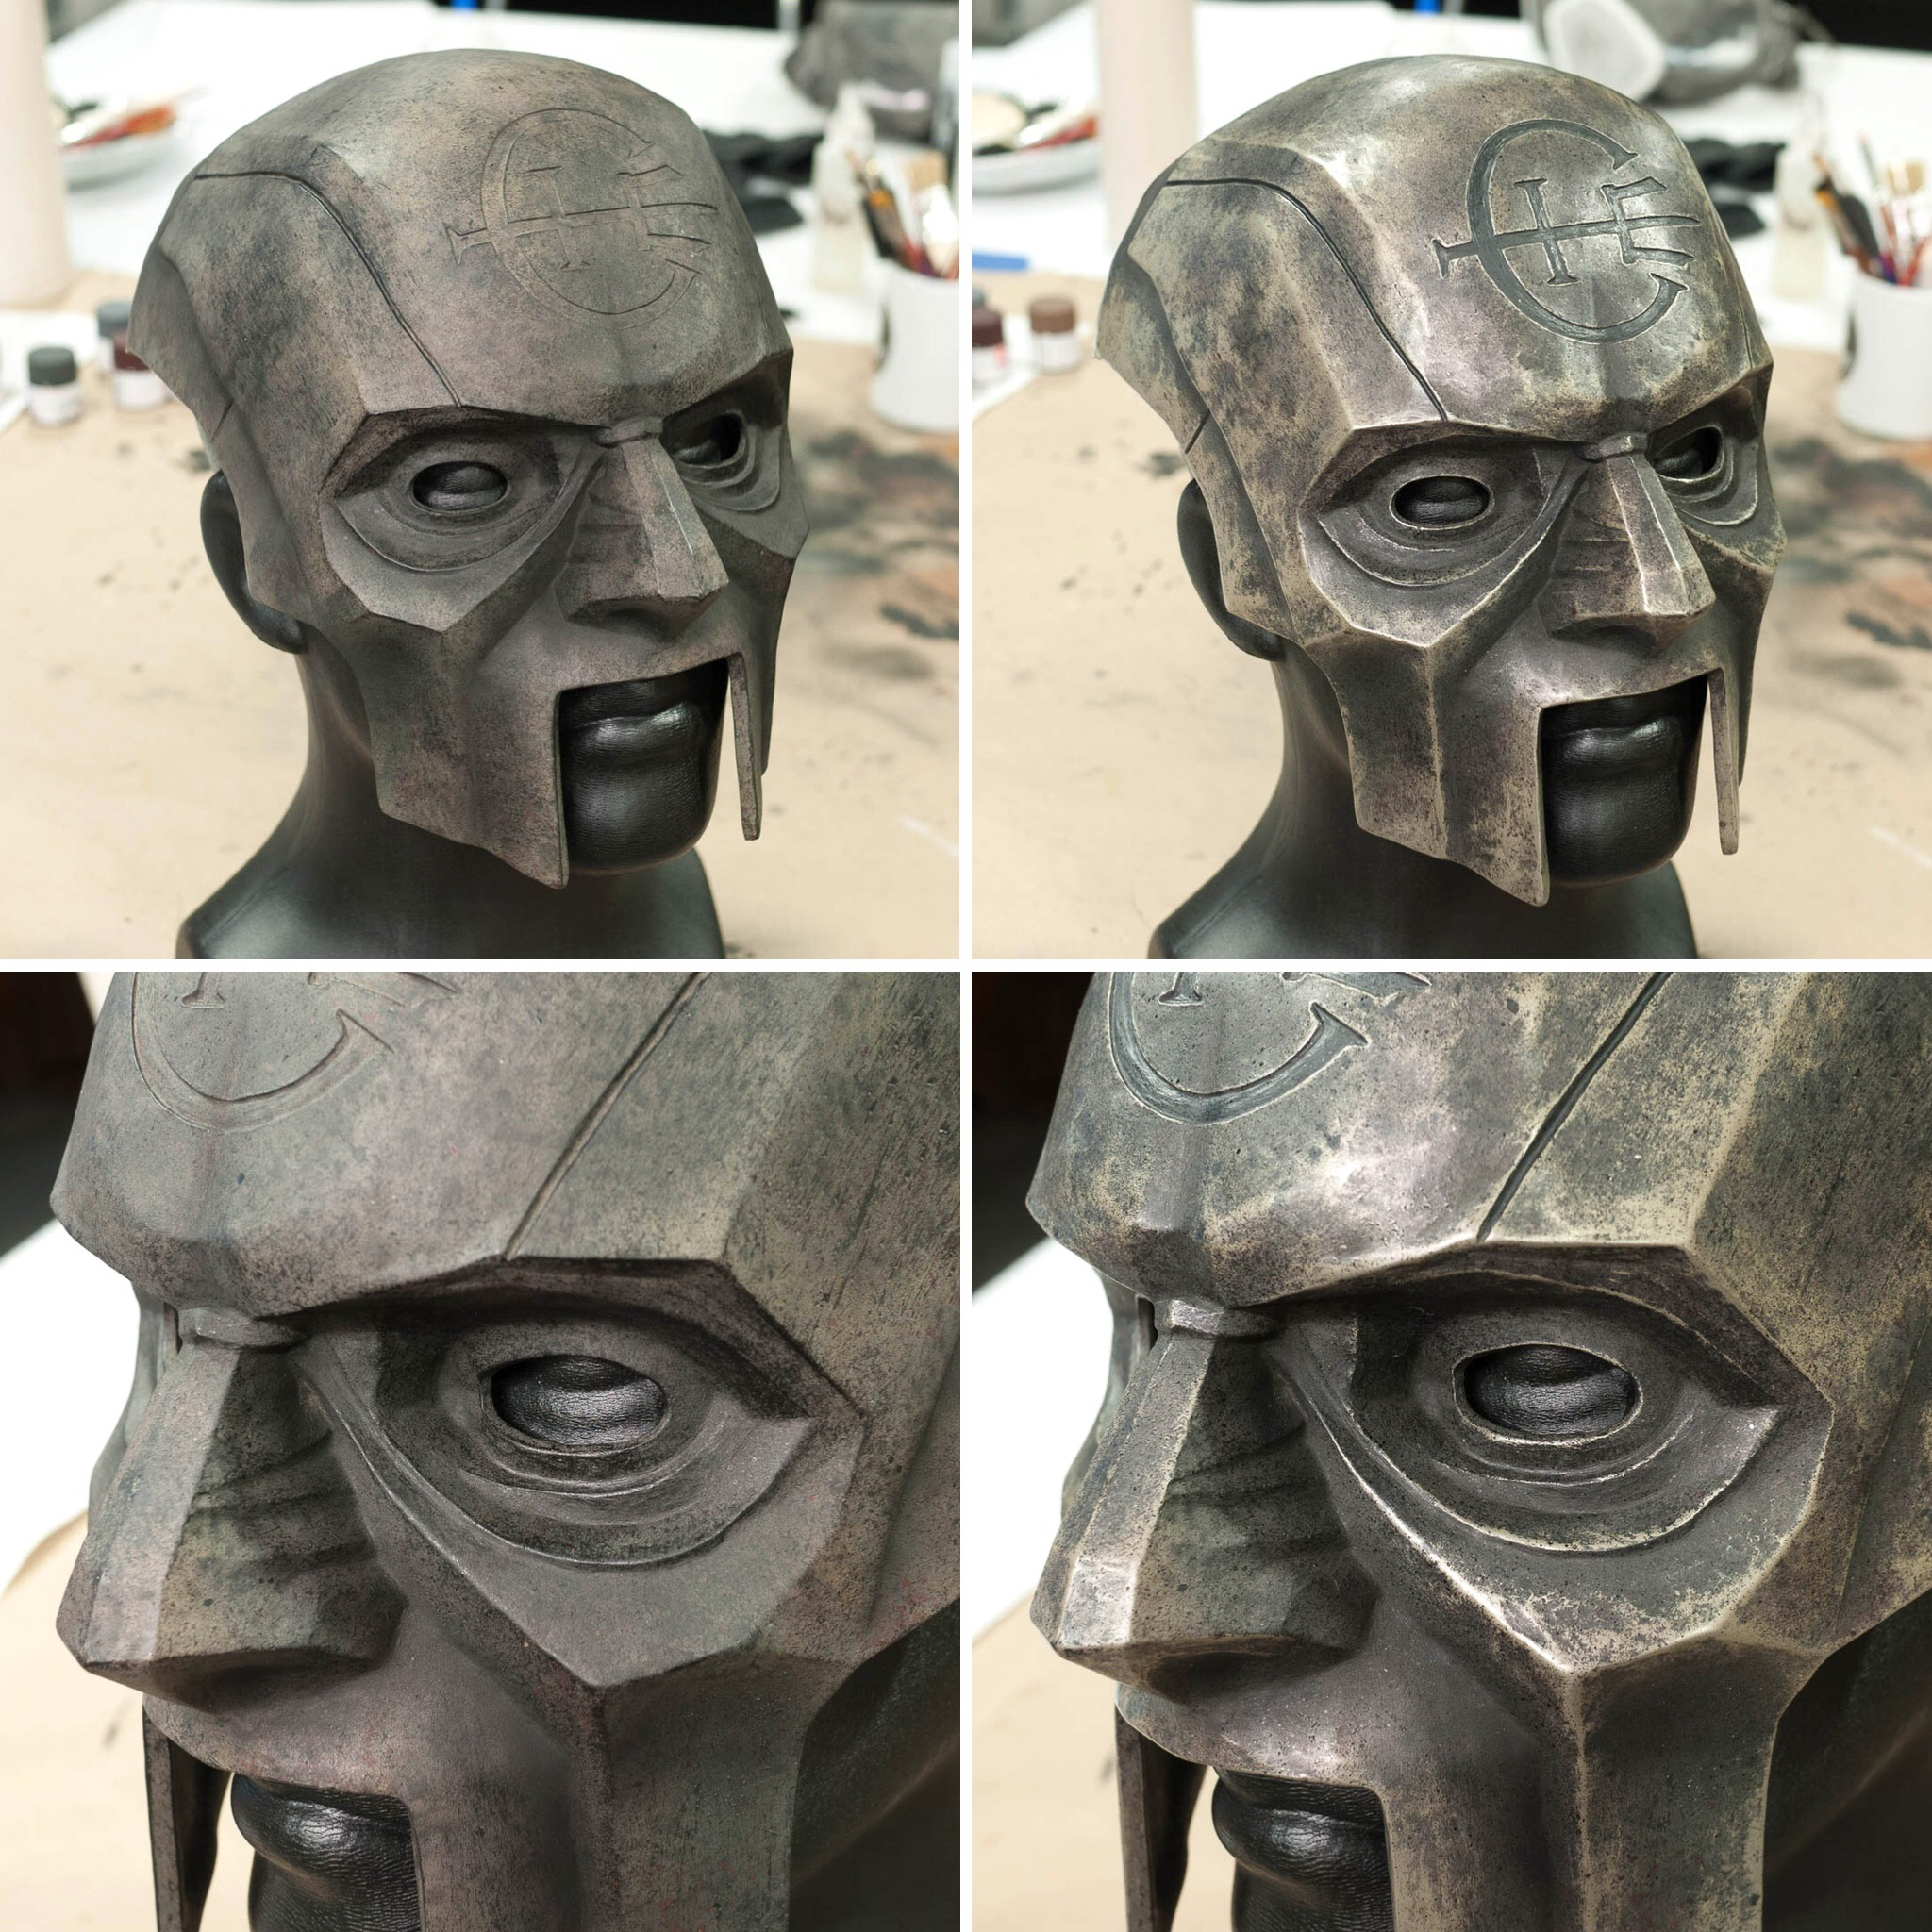 Dishonored 2 Overseer Mask before and after weathering